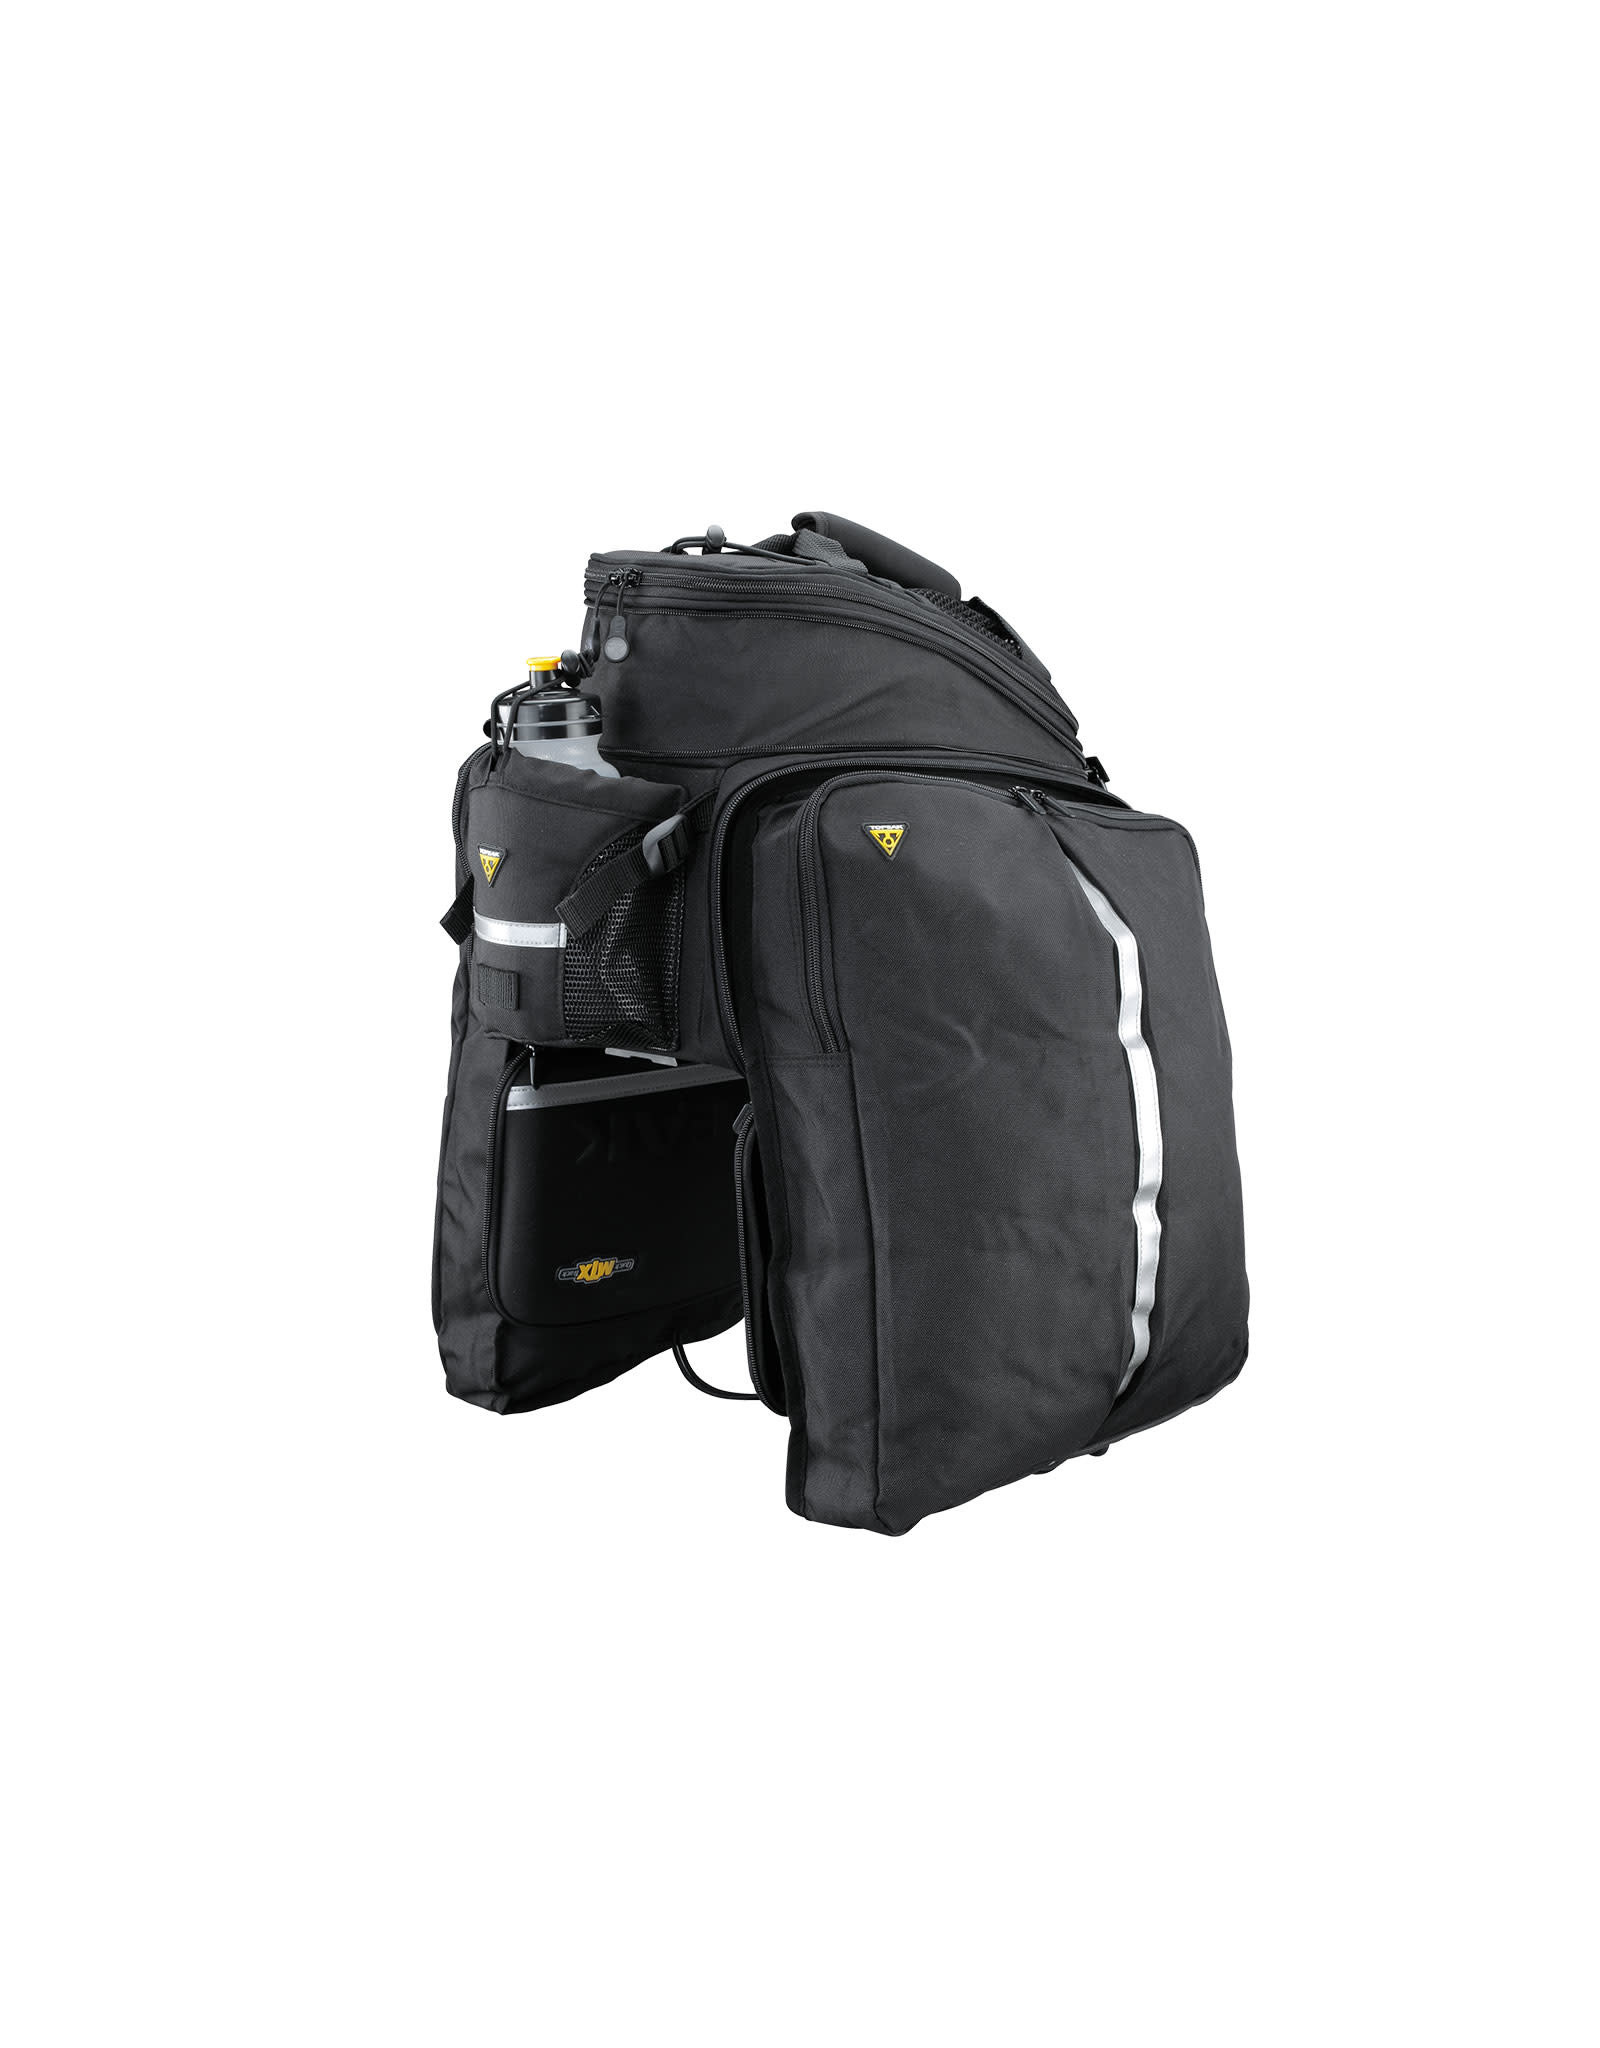 Topeak Bag Topeak MTX TrunkBag DXP w/ Panniers Black